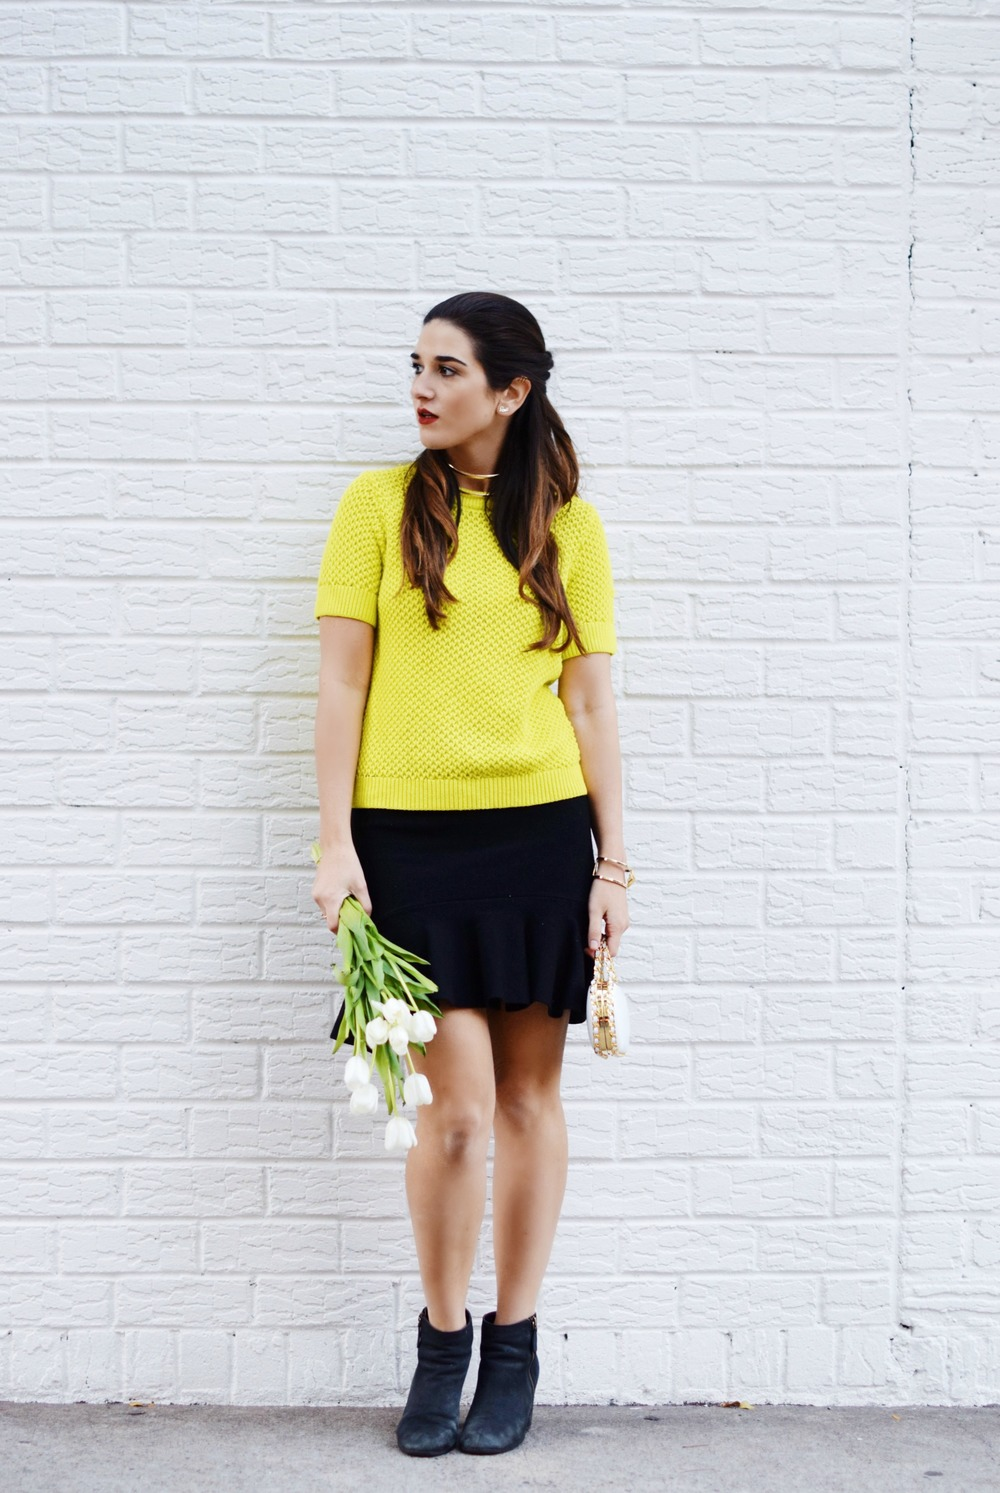 White Prince Minaudiere Erin Dana Louboutins & Love Fashion Blog Esther Santer NYC Street Style Blogger Bag Giveaway Gold Jewelry Lydell Bracelet Collar Necklace Black Booties Flared Ruffle Skirt Neon Yellow Sweater Photoshoot Club Monaco Model Outfit.jpg